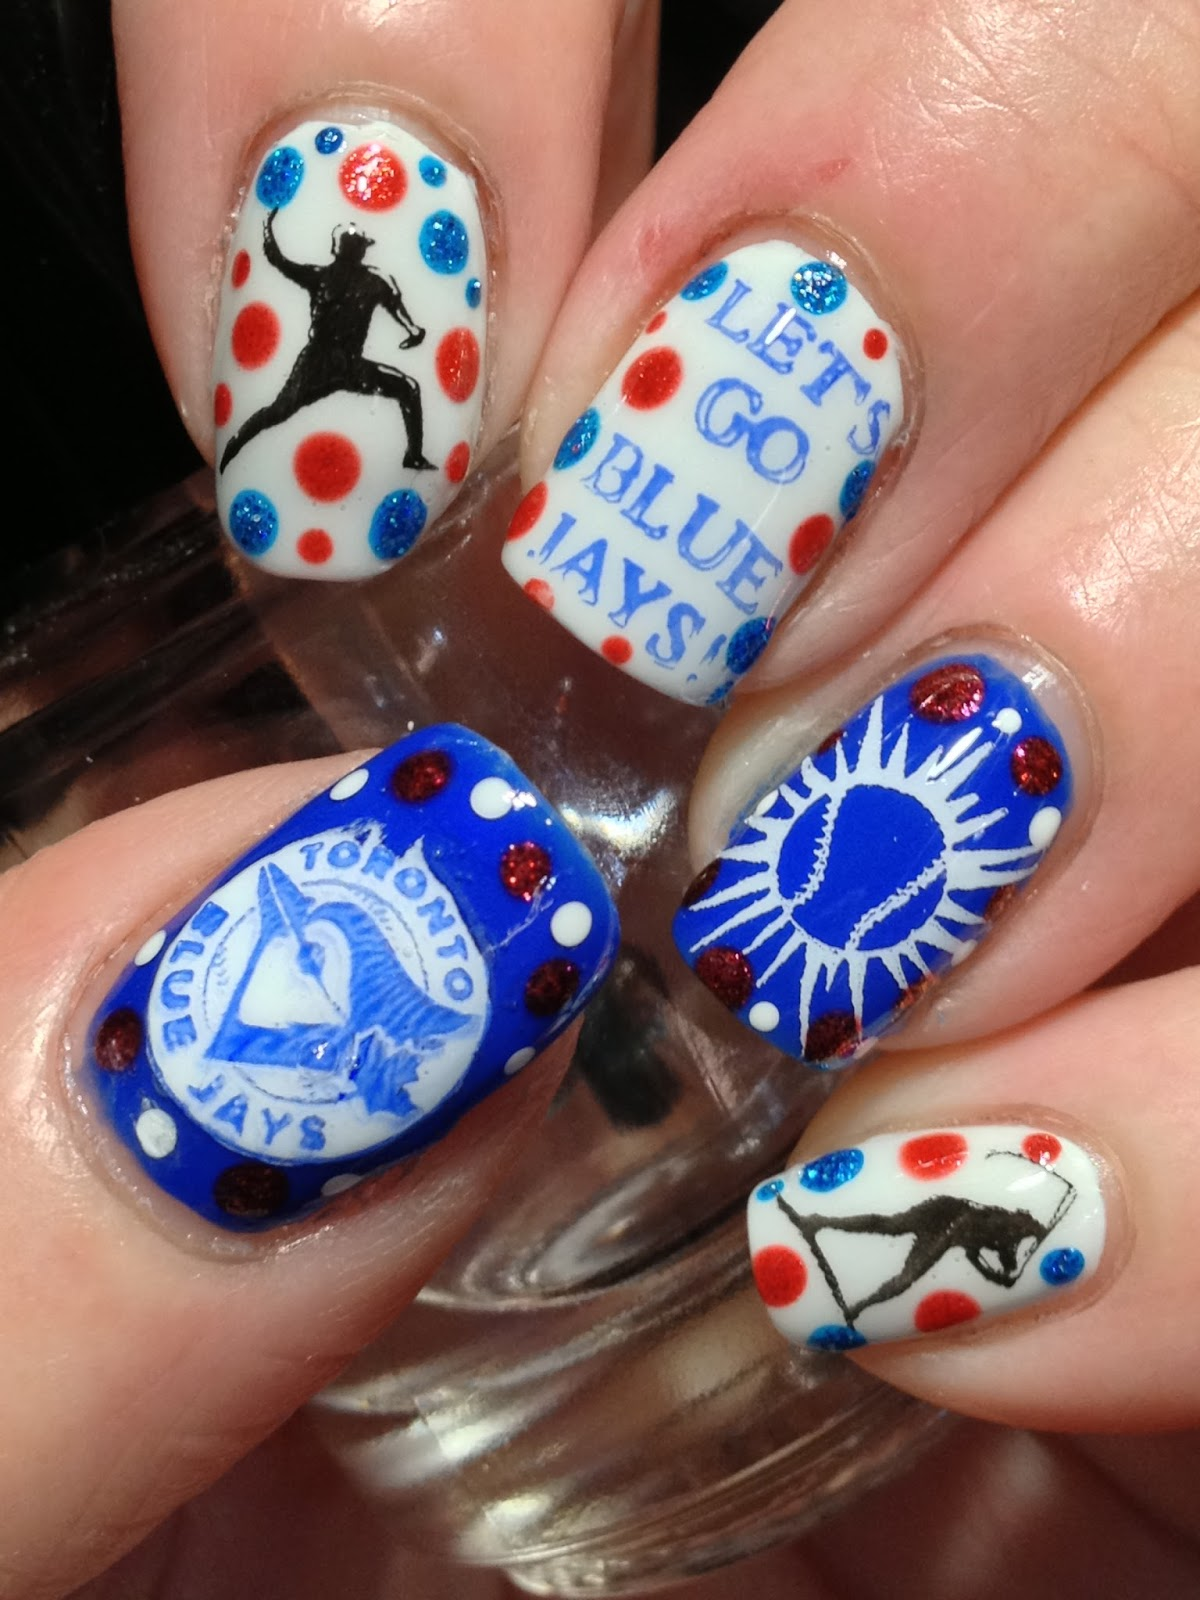 Canadian Nail Fanatic Let S Go Blue Jays